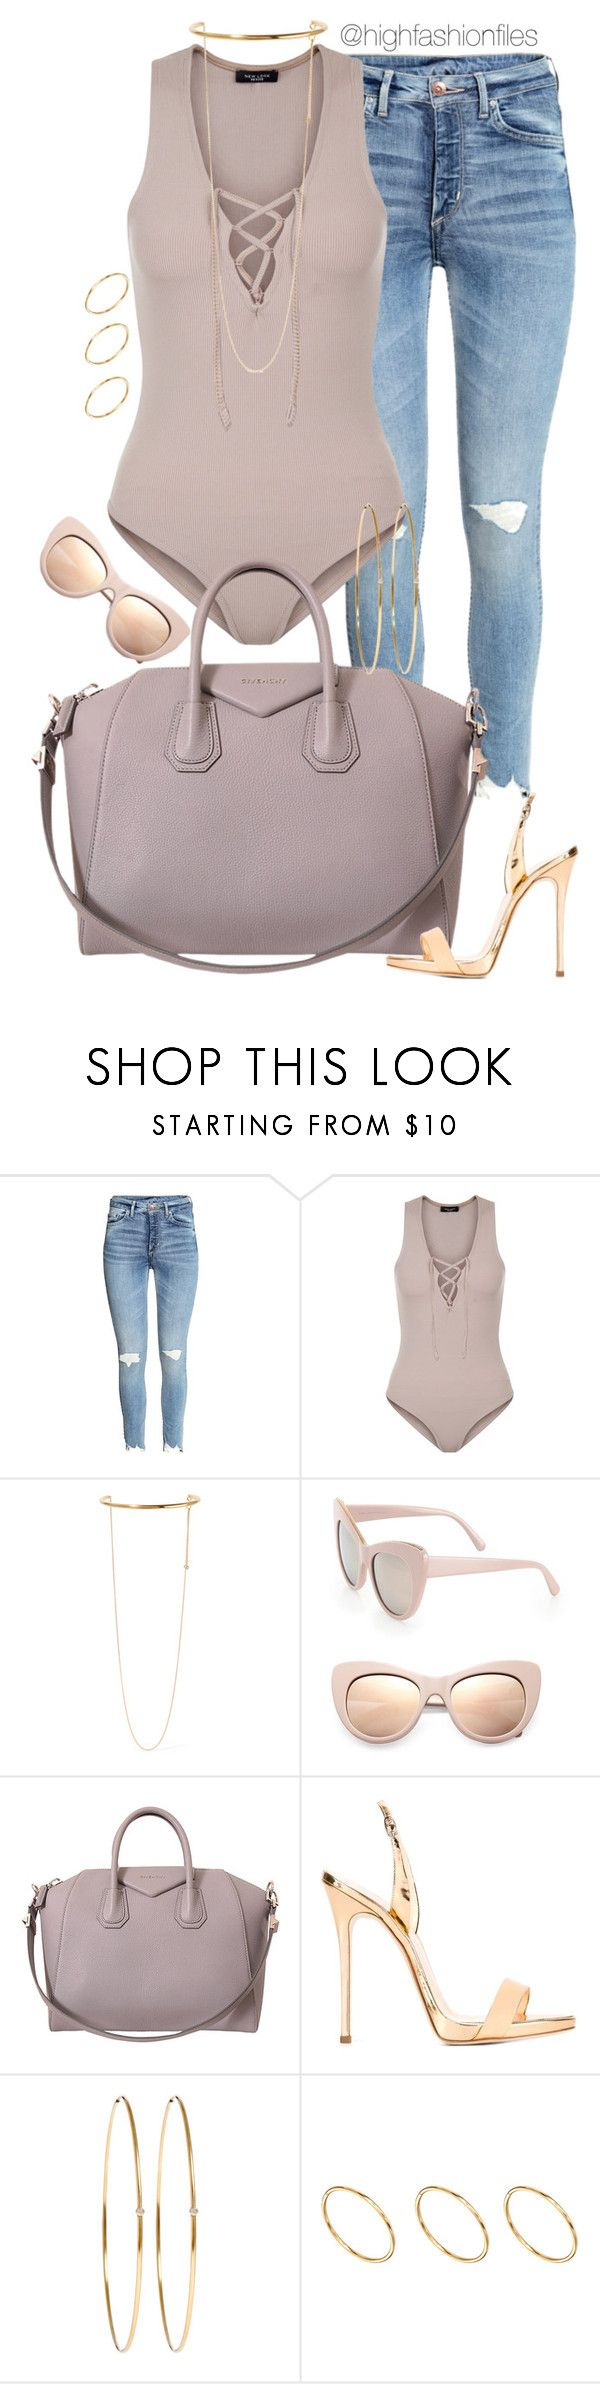 """Untitled #2480"" by highfashionfiles ❤ liked on Polyvore featuring New Look, STELLA McCARTNEY, Givenchy, Giuseppe Zanotti, Jennifer Meyer Jewelry and ASOS"